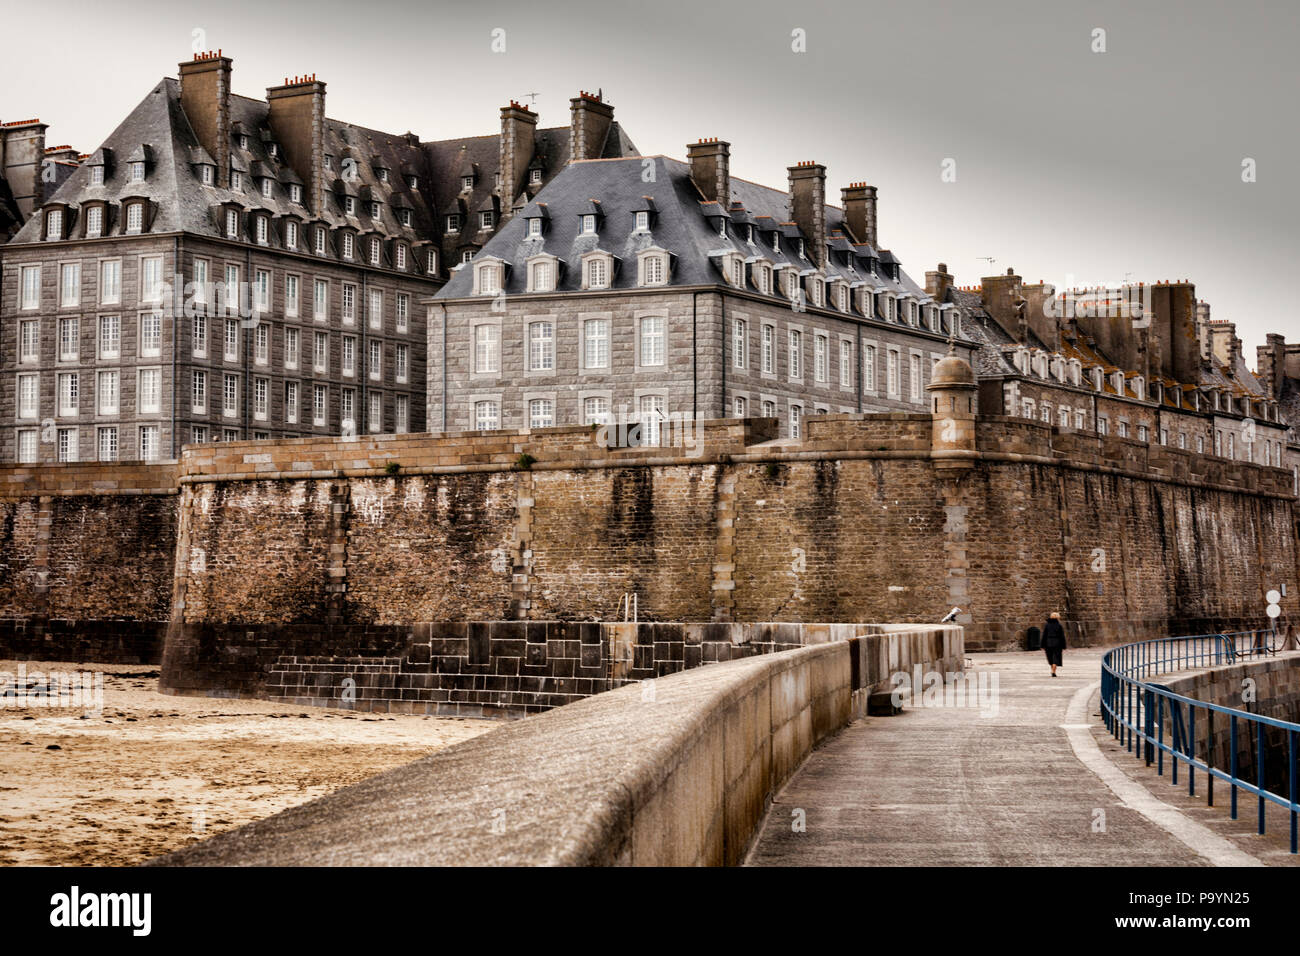 The old town and ramparts of Saint-Malo in flat light. - Stock Image